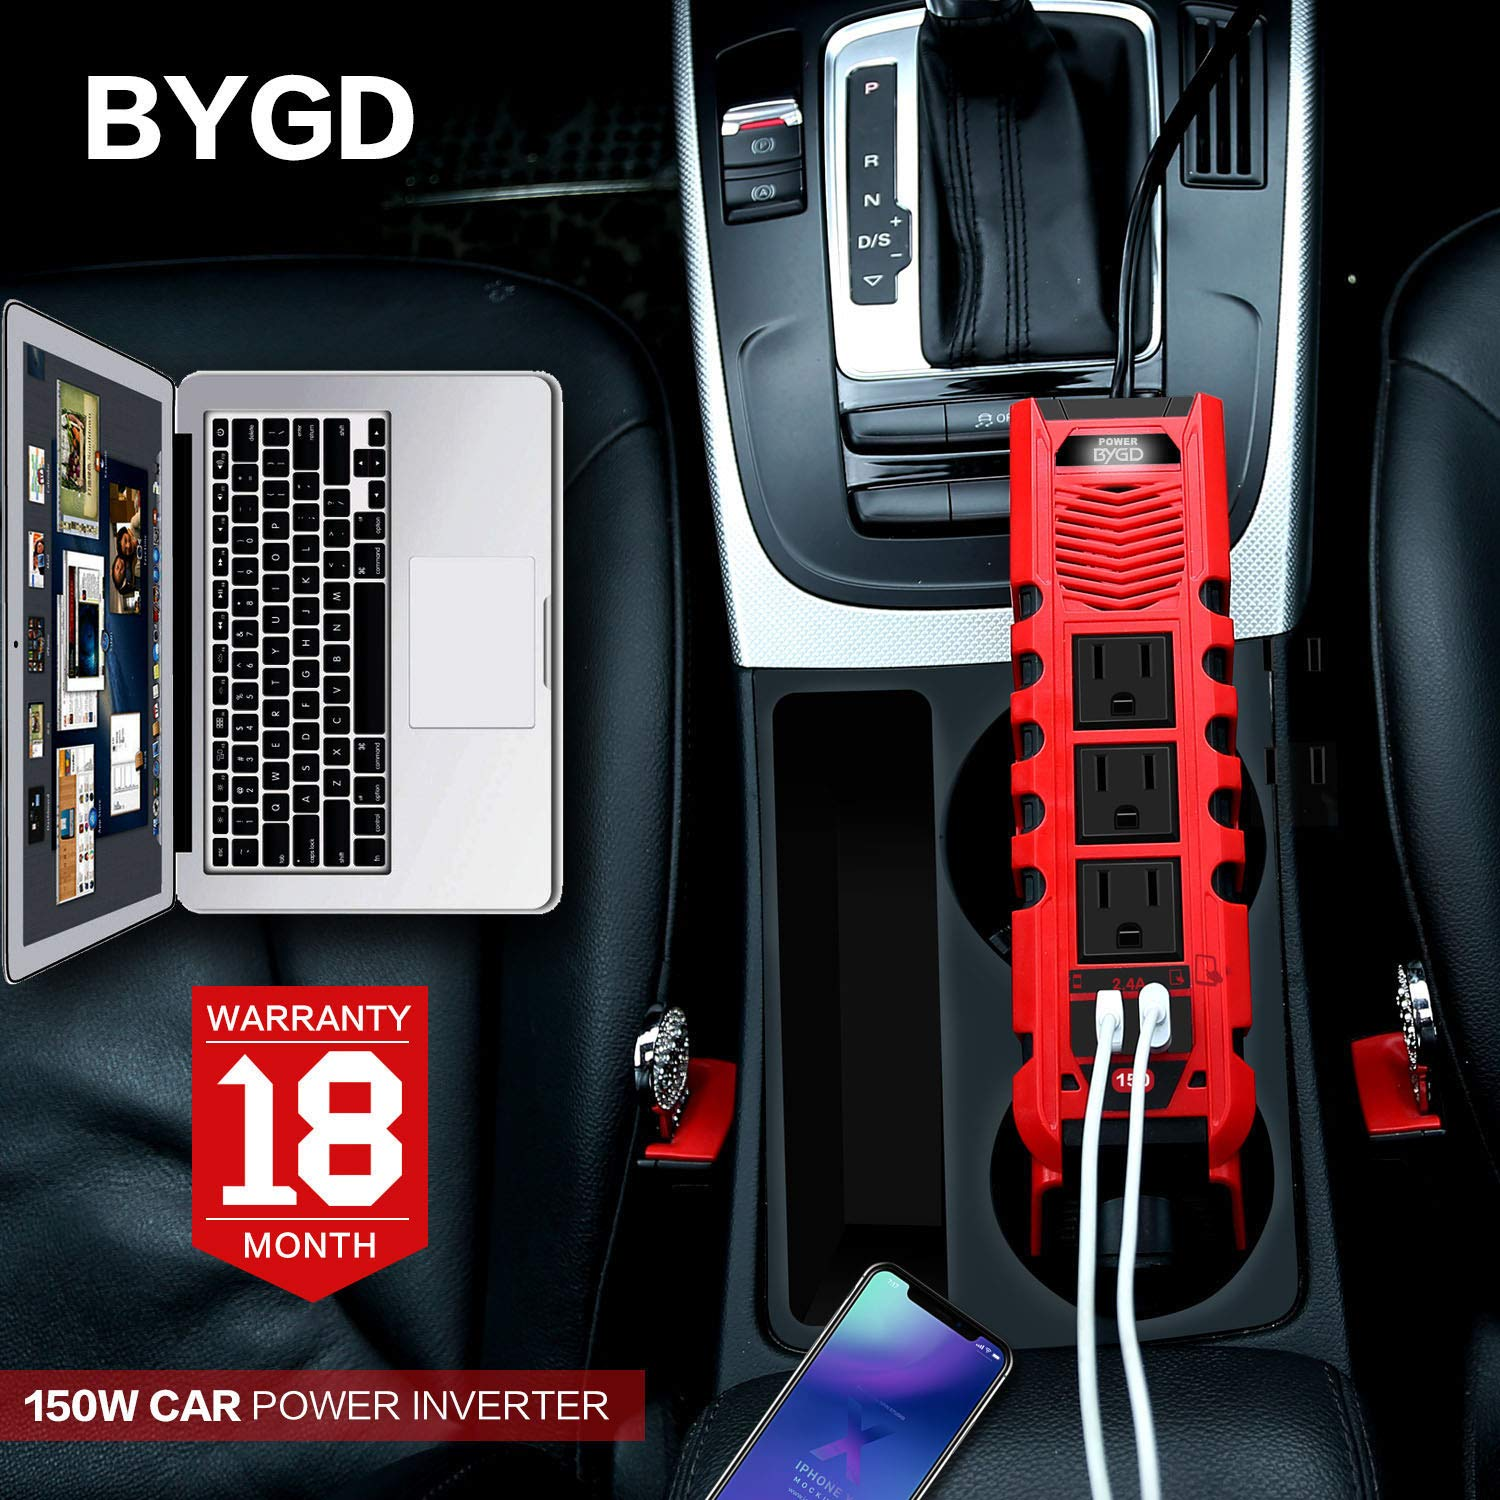 BYGD 150W Car Power Inverter DC 12V to 110V AC Converter with 3 Charger Outlets and Dual 2.4A USB Ports Car Cigarette Lighter Adapter by BYGD (Image #5)